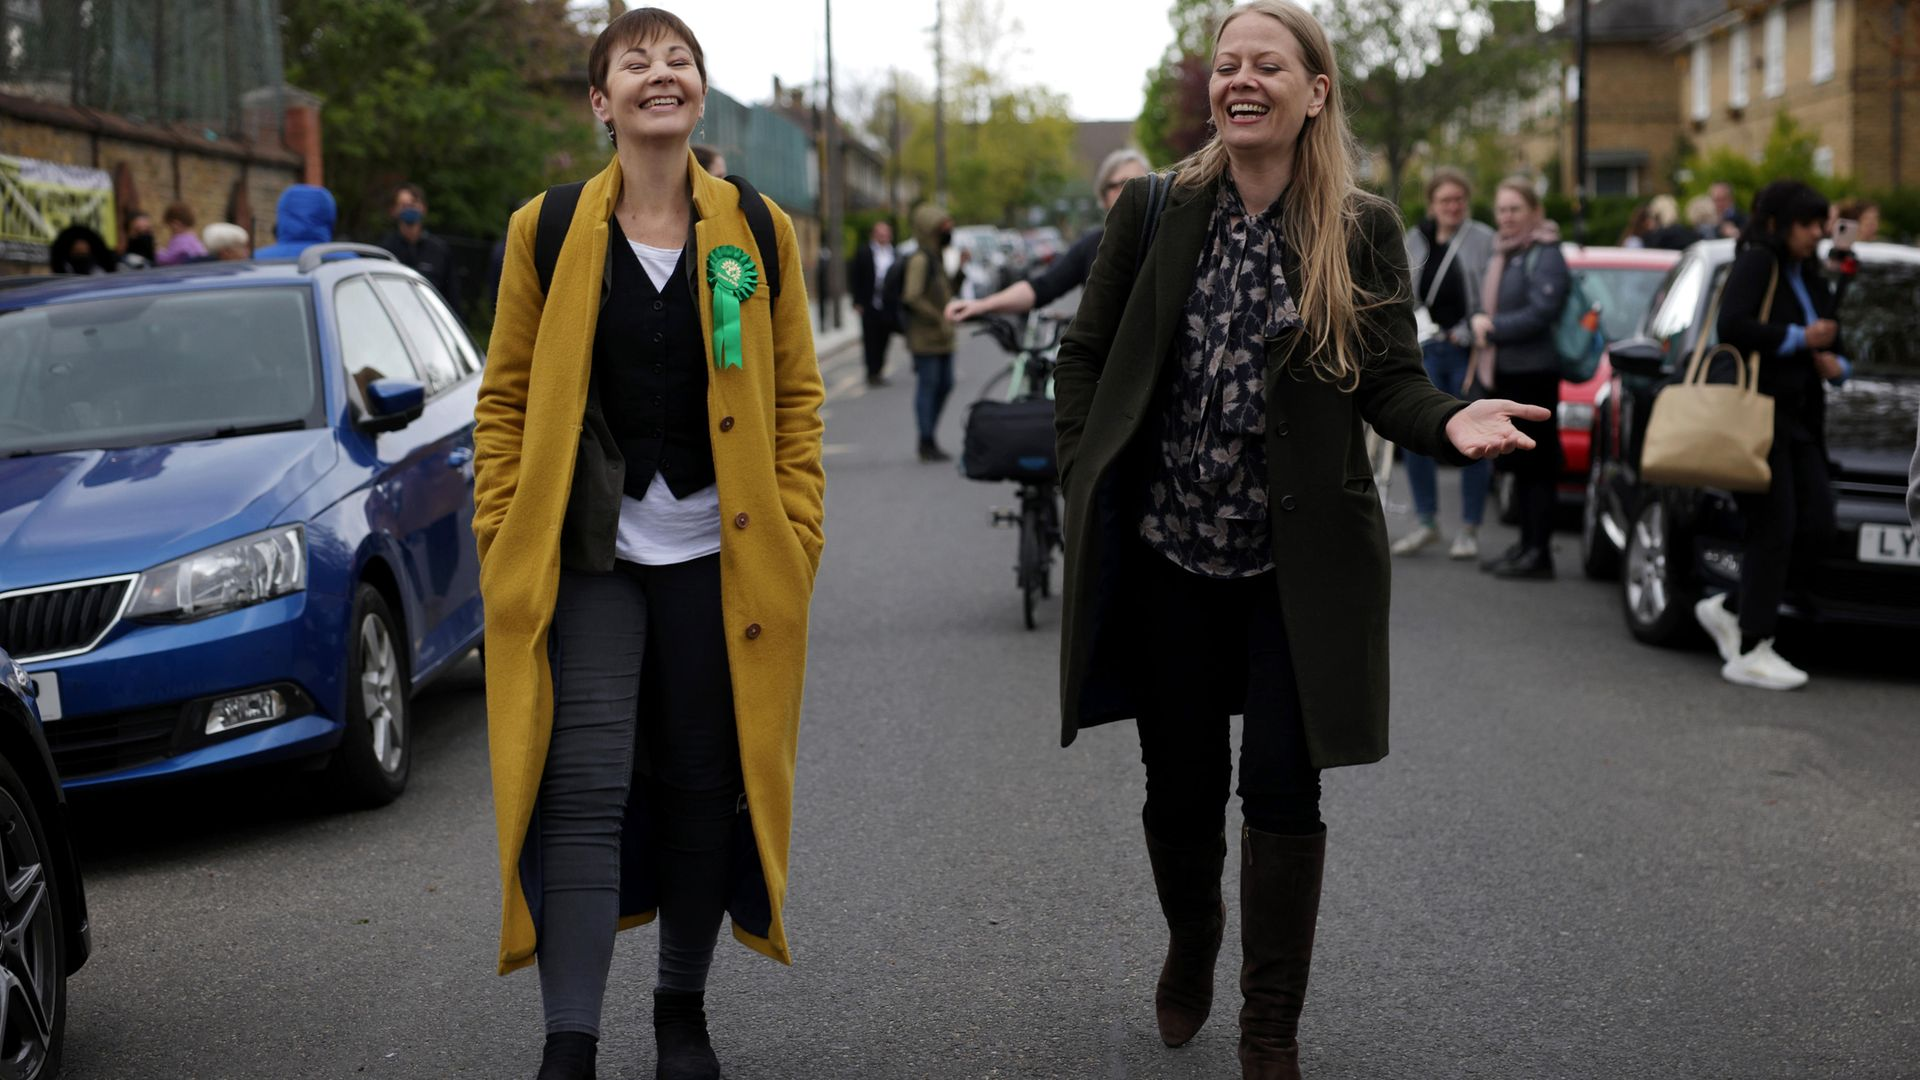 The Greens' only MP, Caroline Lucas, shares a joke with Sian Berry, the party's candidate for London mayor, on the campaign trail recently - Credit: Getty Images